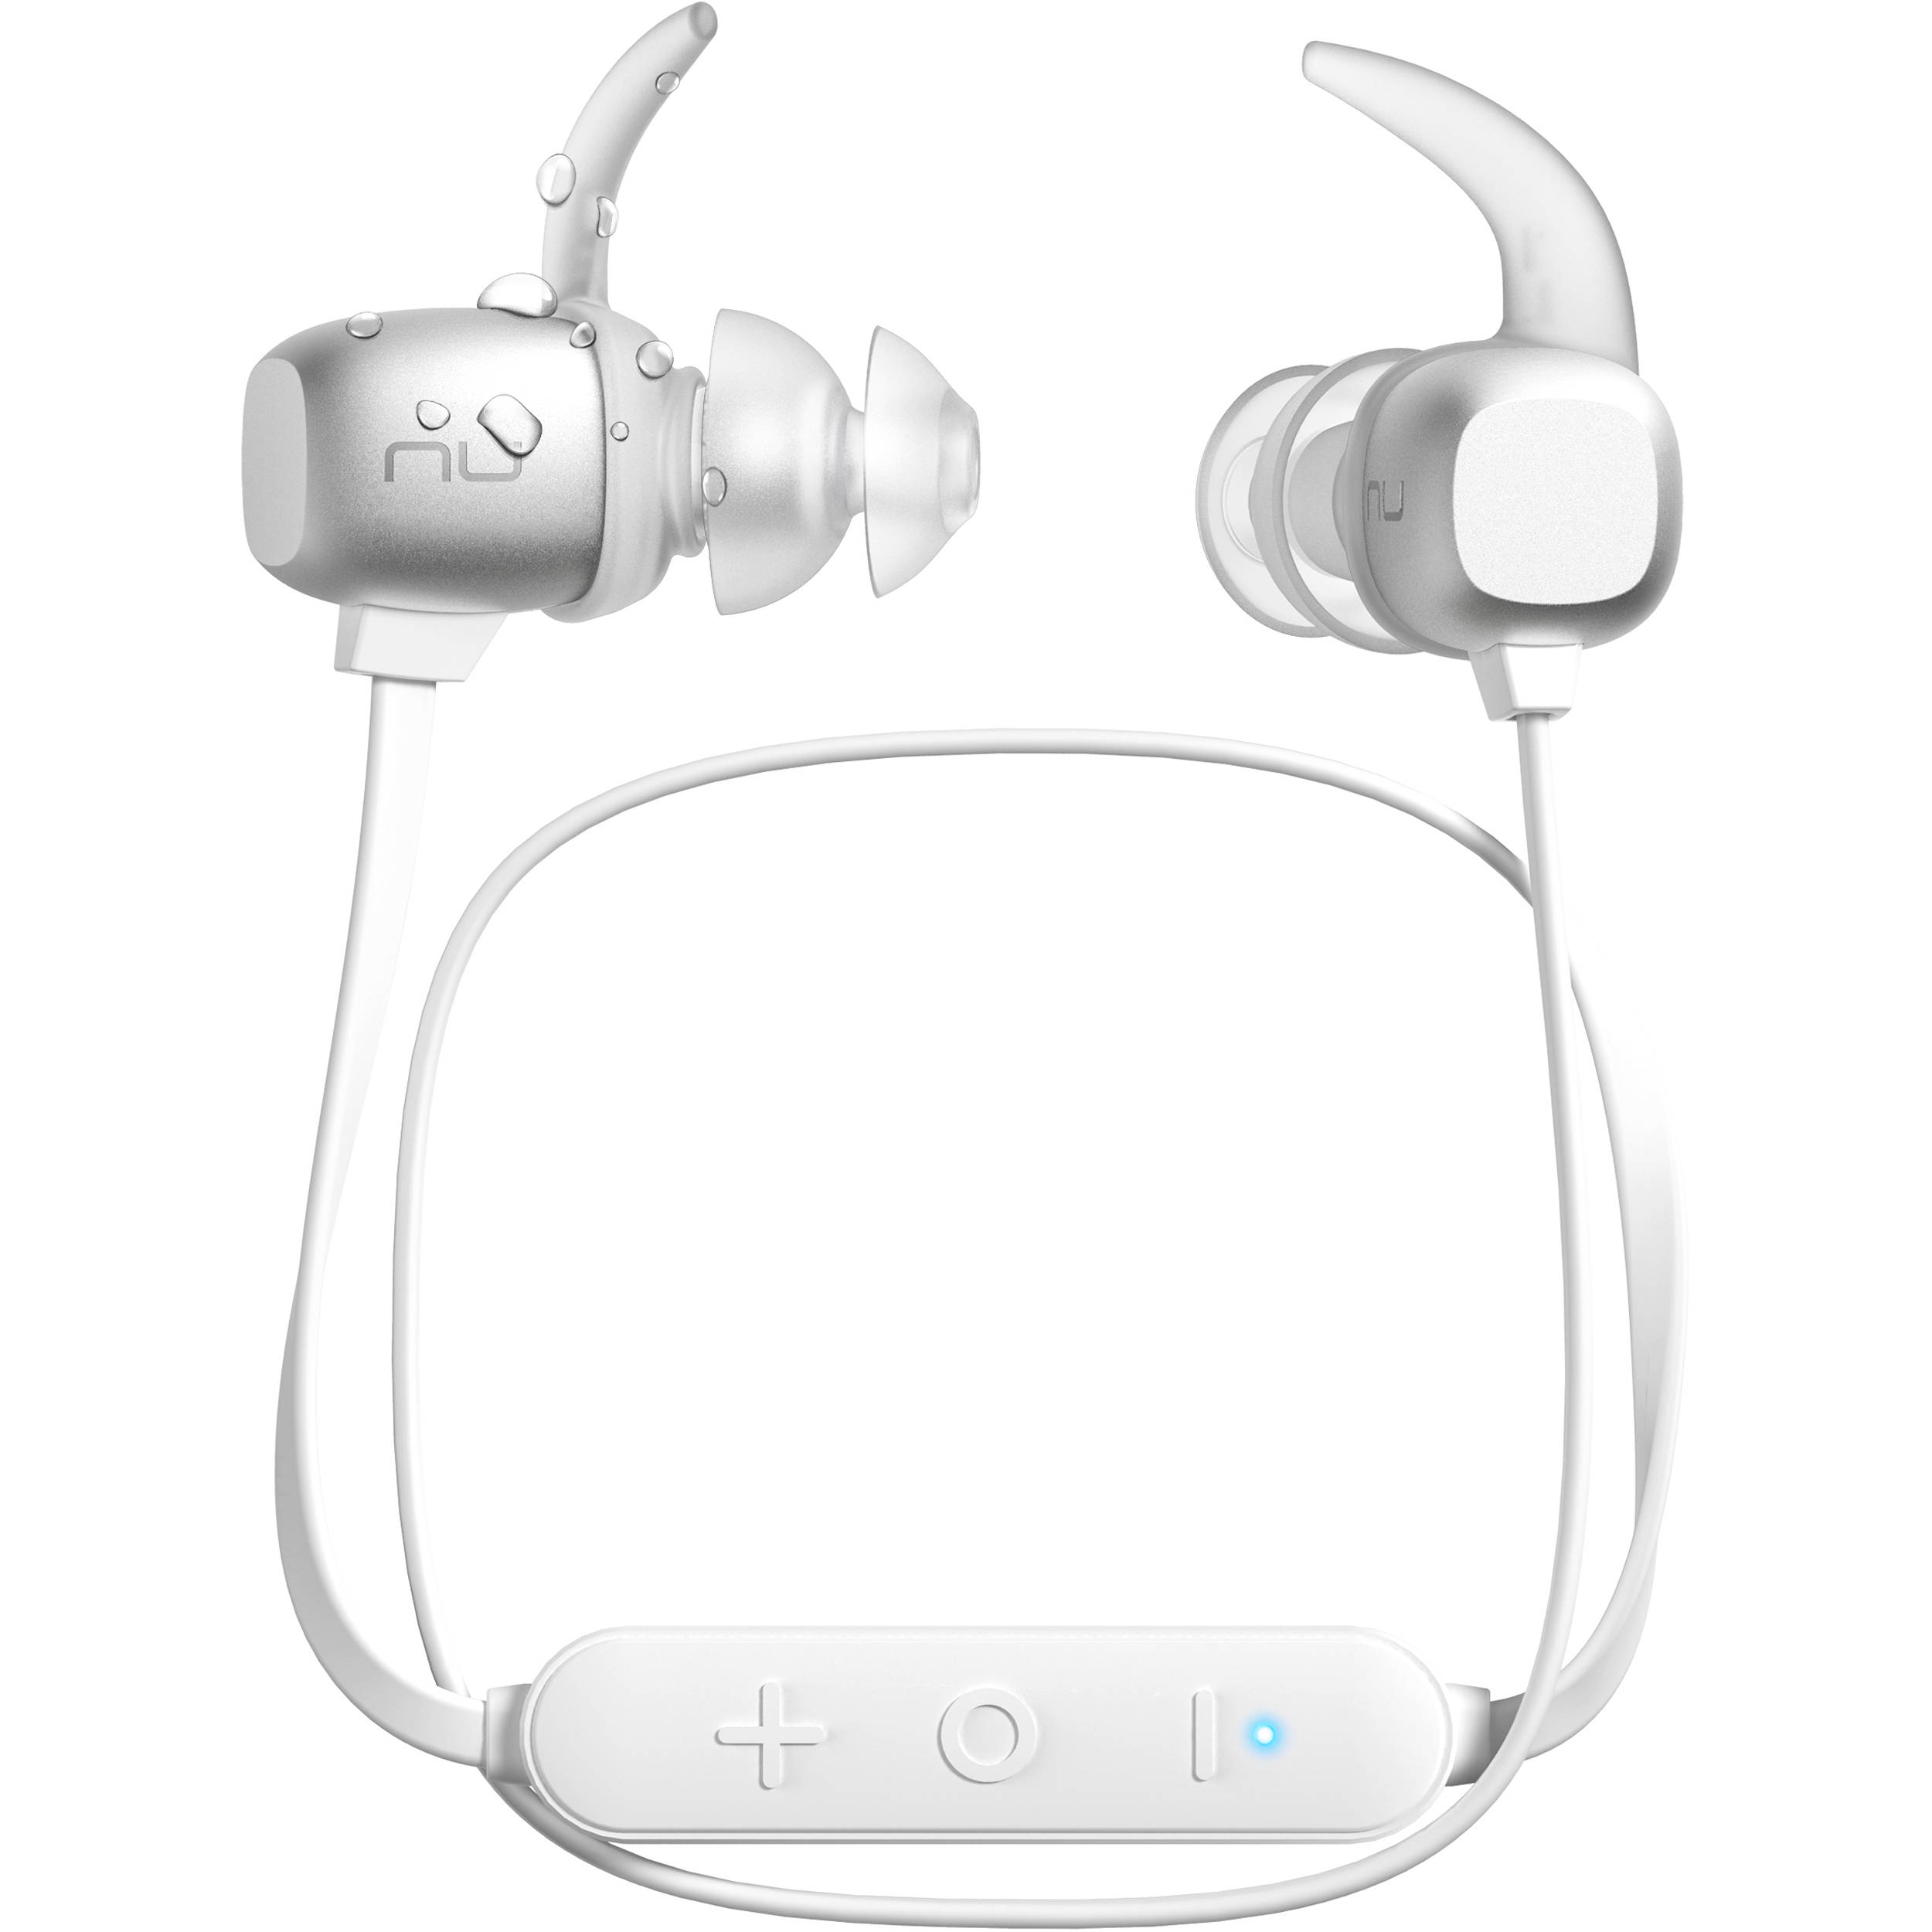 8eee5034860 NuForce BE Sport4 Wireless In-Ear Headphones BESPORT4-SILVER B&H